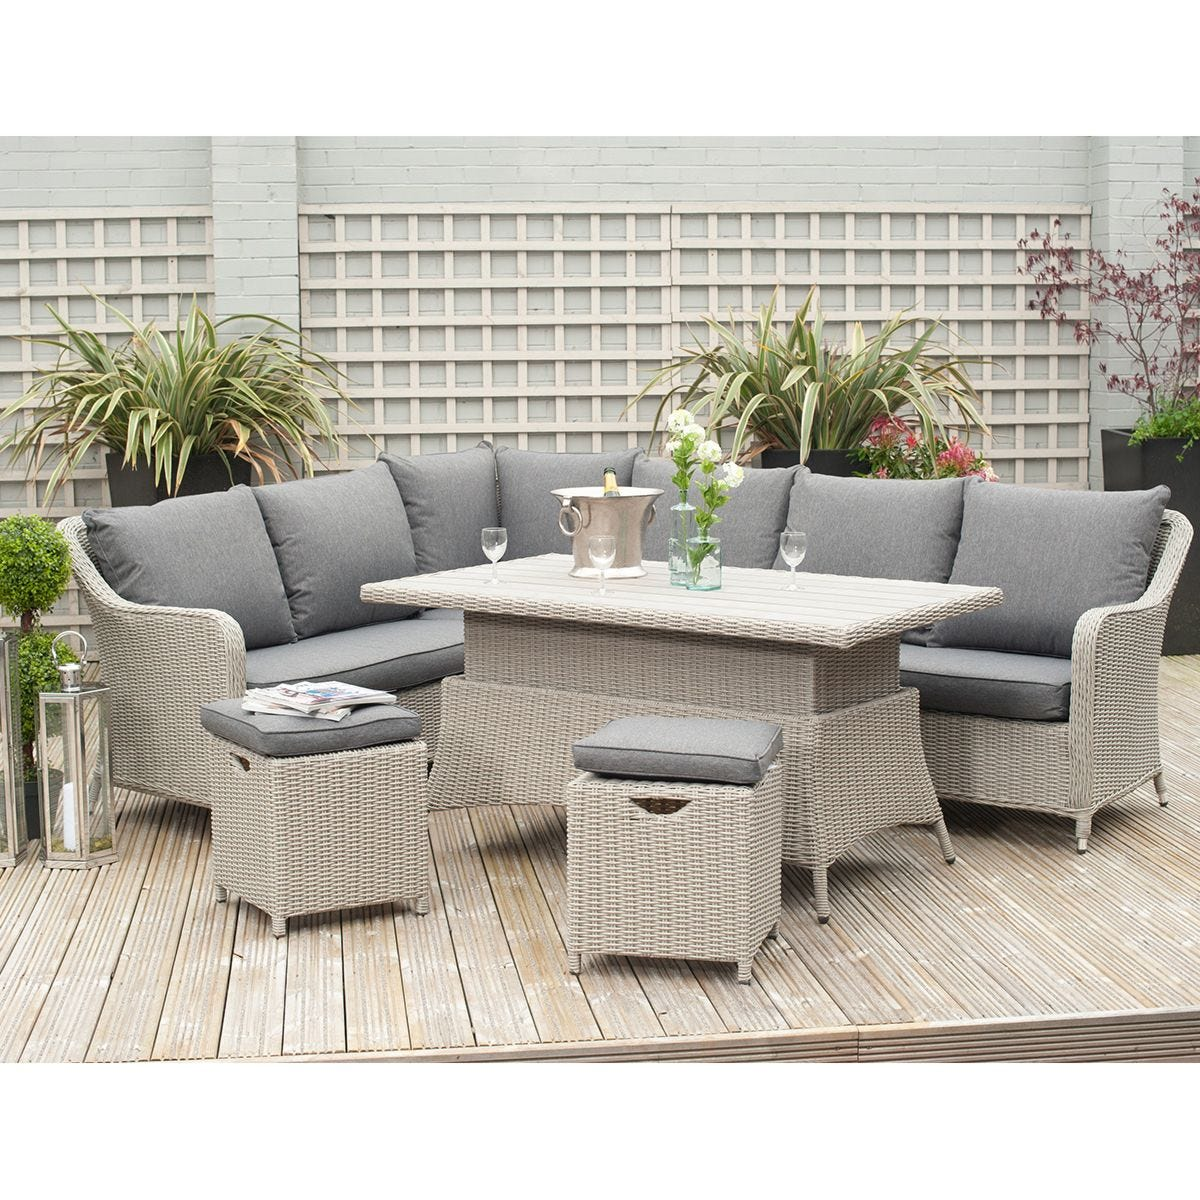 Pacific Lifestyle Antigua Corner Dining Set with Adjustable Table - Stone Grey